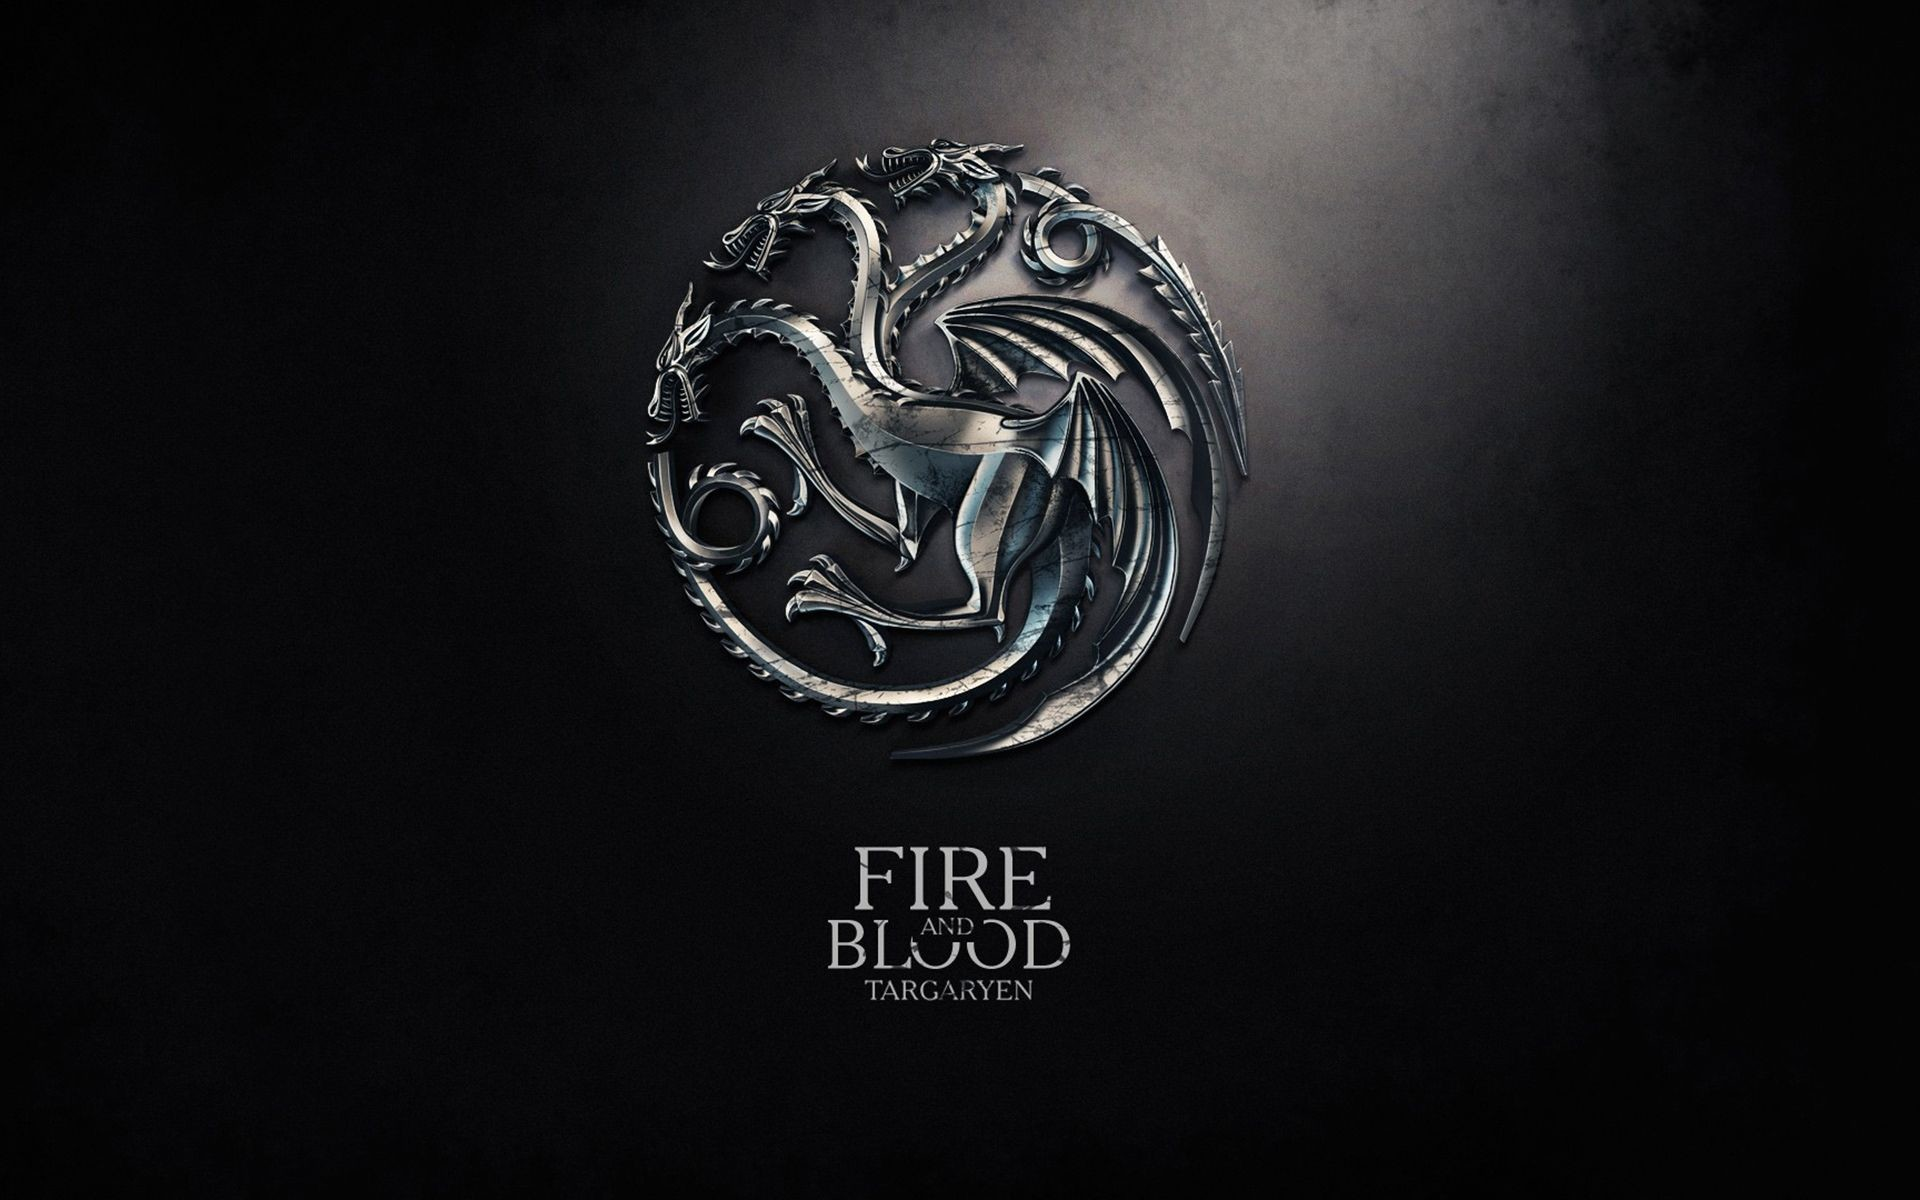 dragons fantasy art Game of Thrones A Song Of Ice And Fire logos TV series  Targaryen HBO George R.